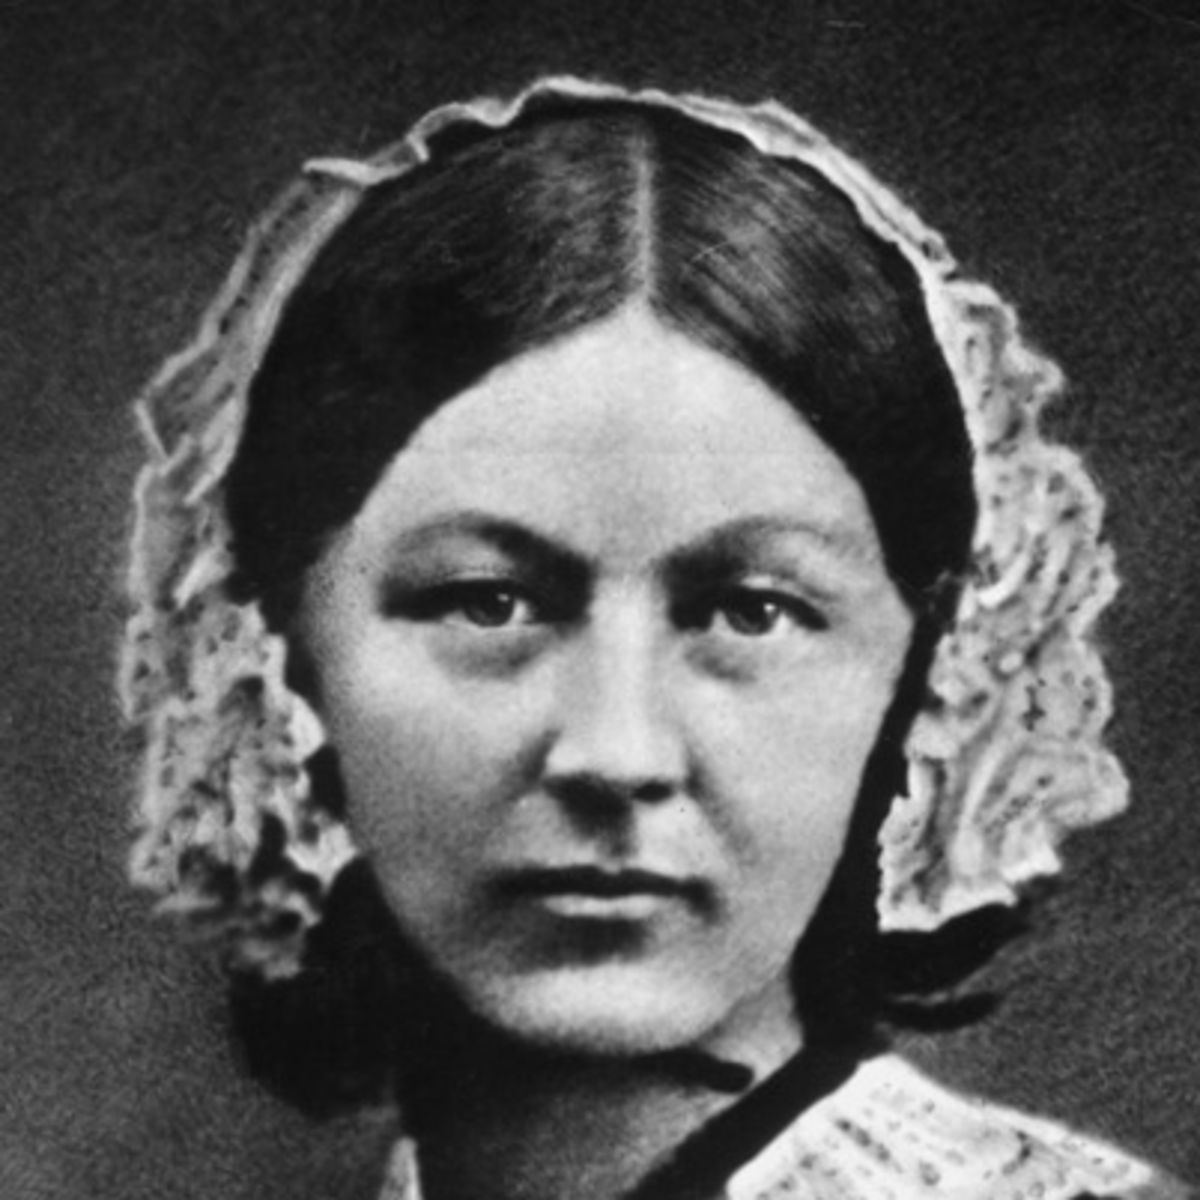 florence nightingale an influential woman during the victorian era